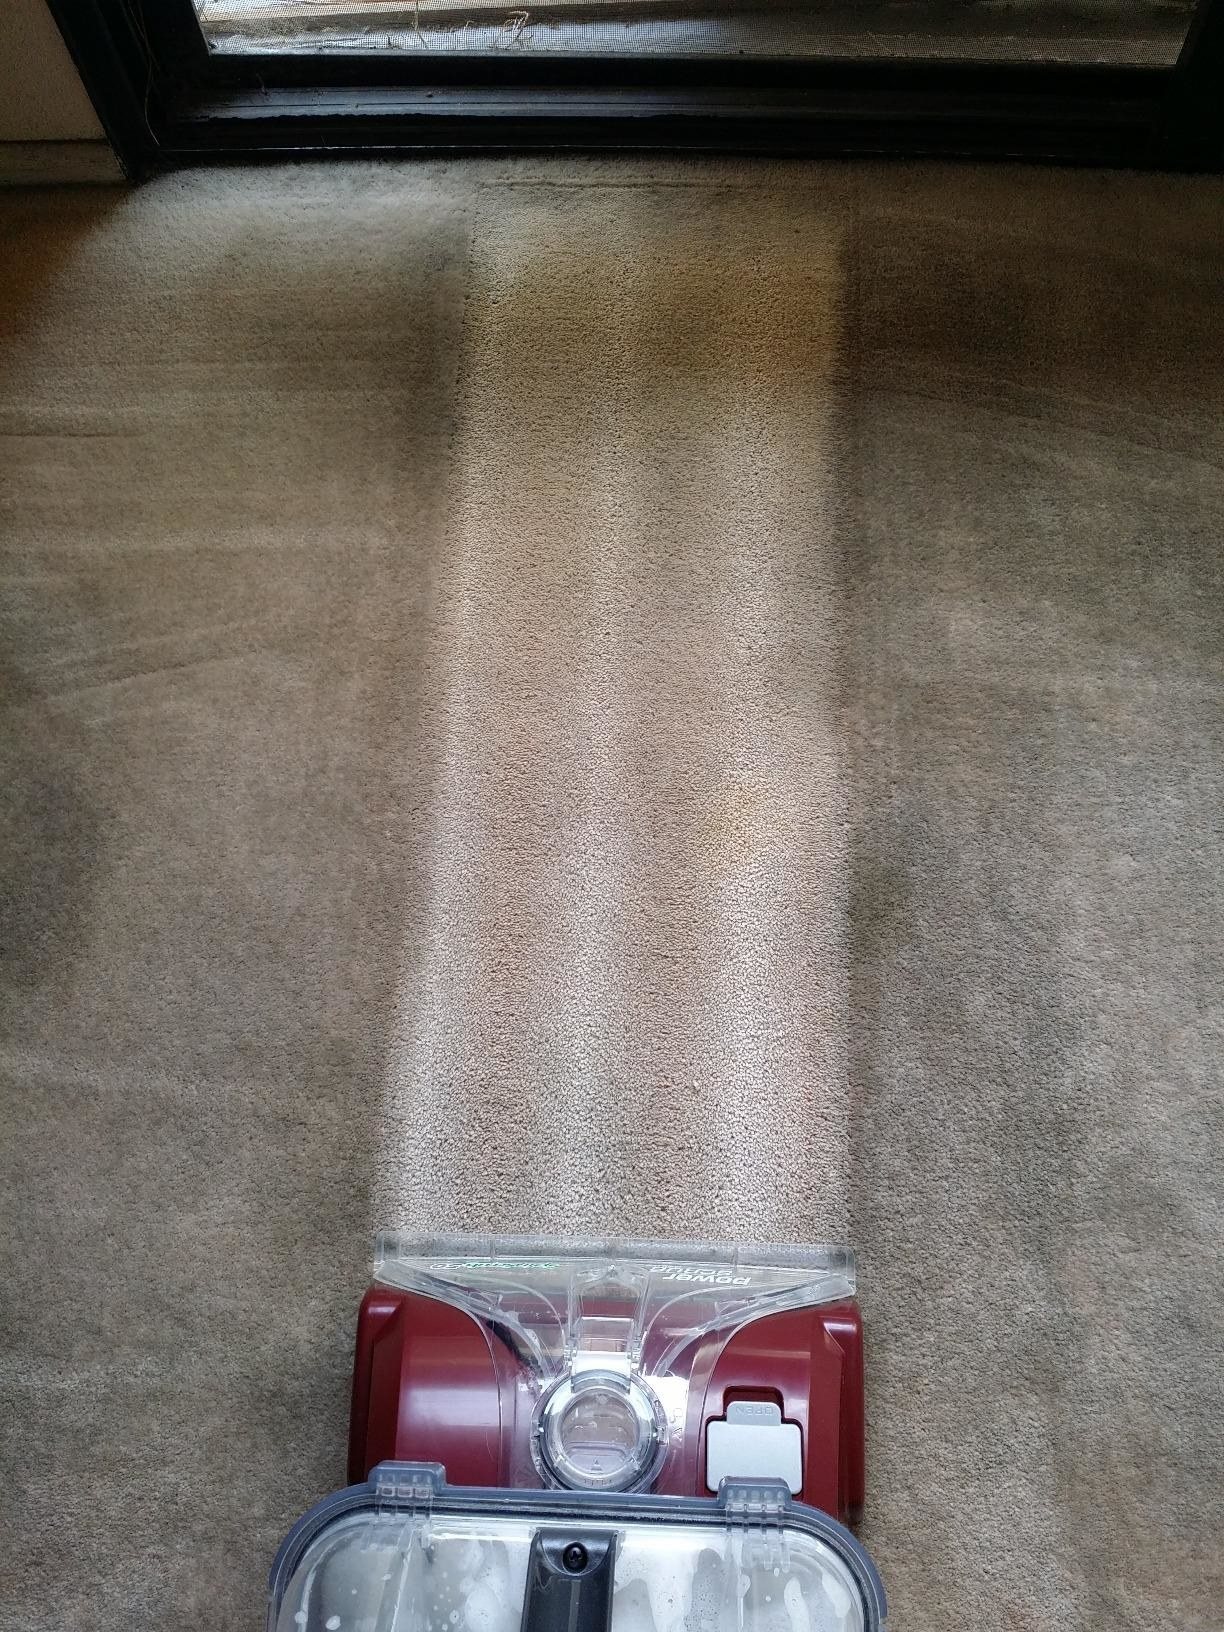 vacuum being used on carpet and showing a light stripe where it's been